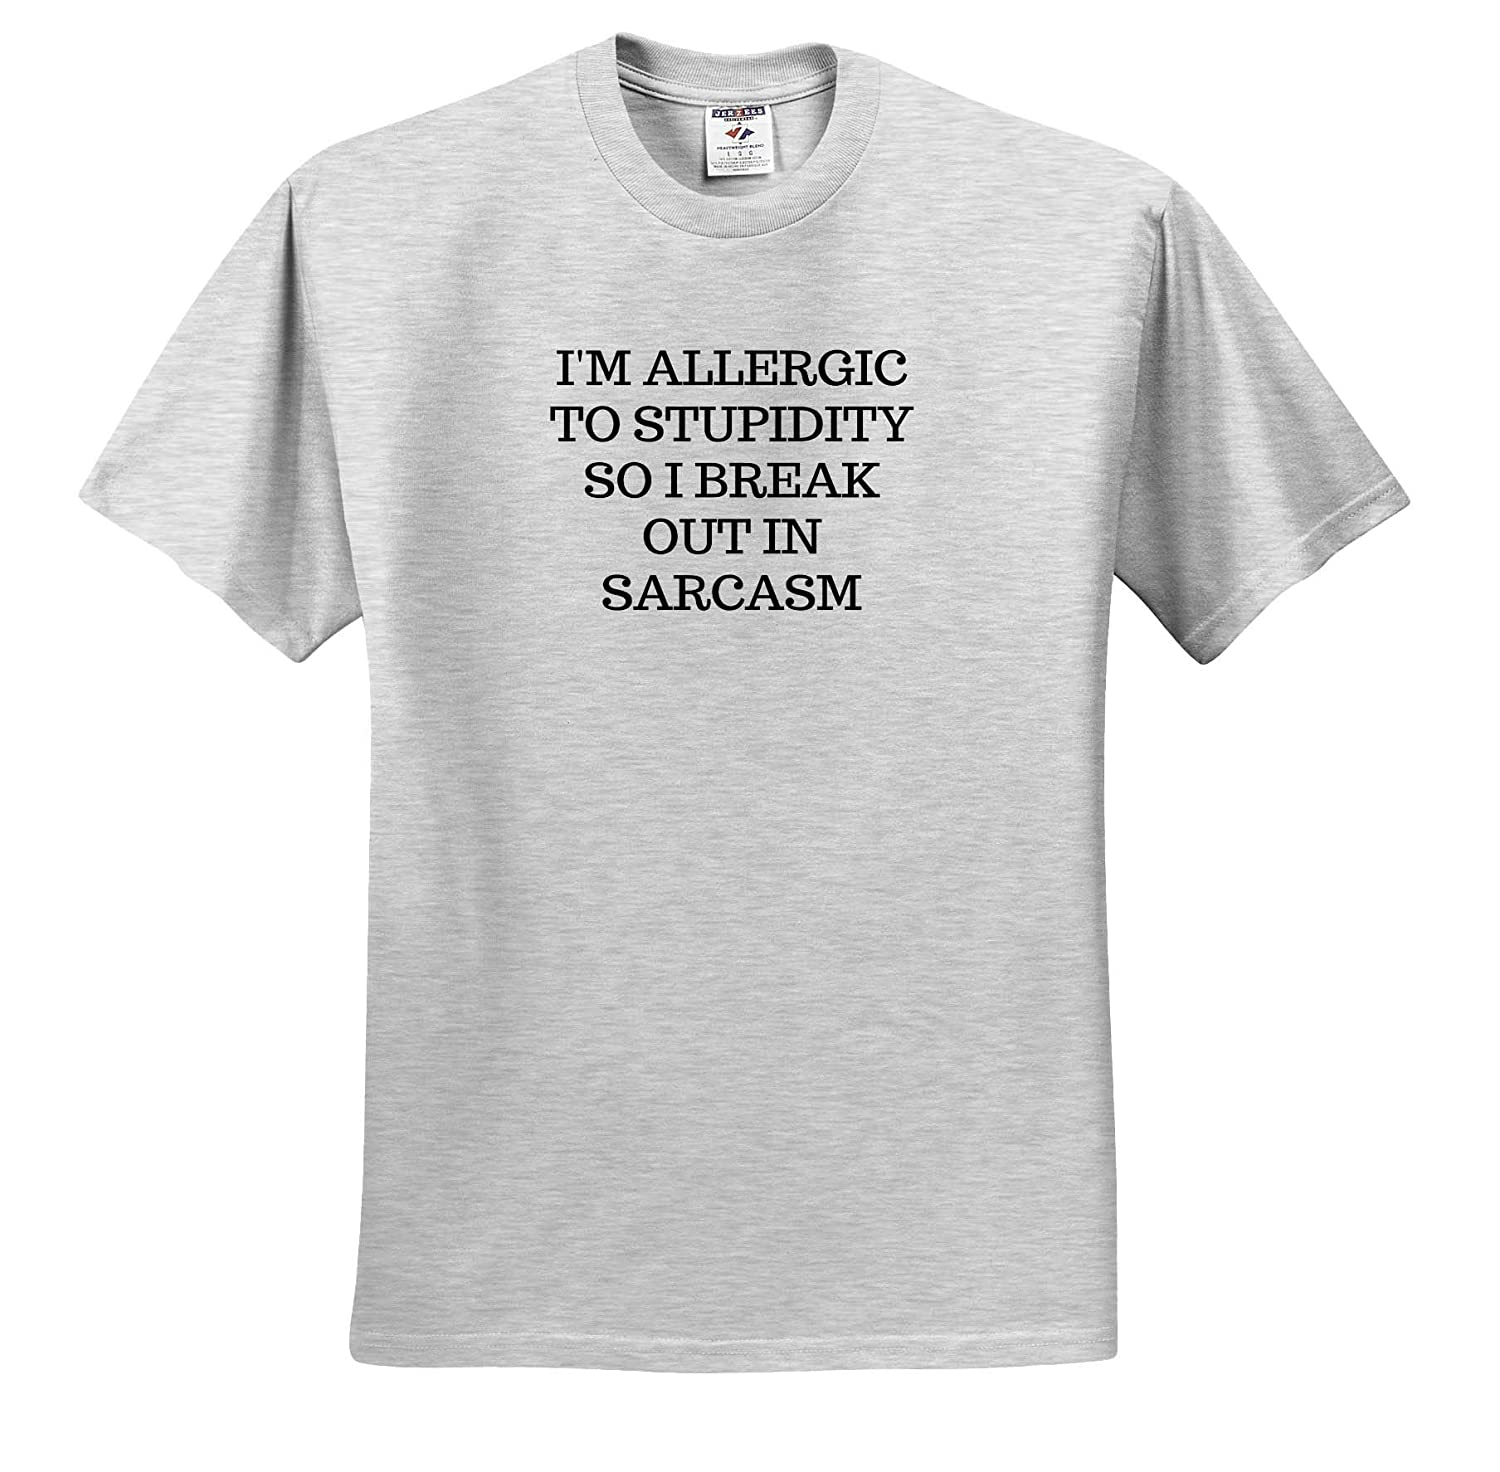 3dRose Gabriella-Quote Adult T-Shirt XL ts/_317835 Image of Im Allergic to Stupidity So I Break Out in Sarcasm Quote